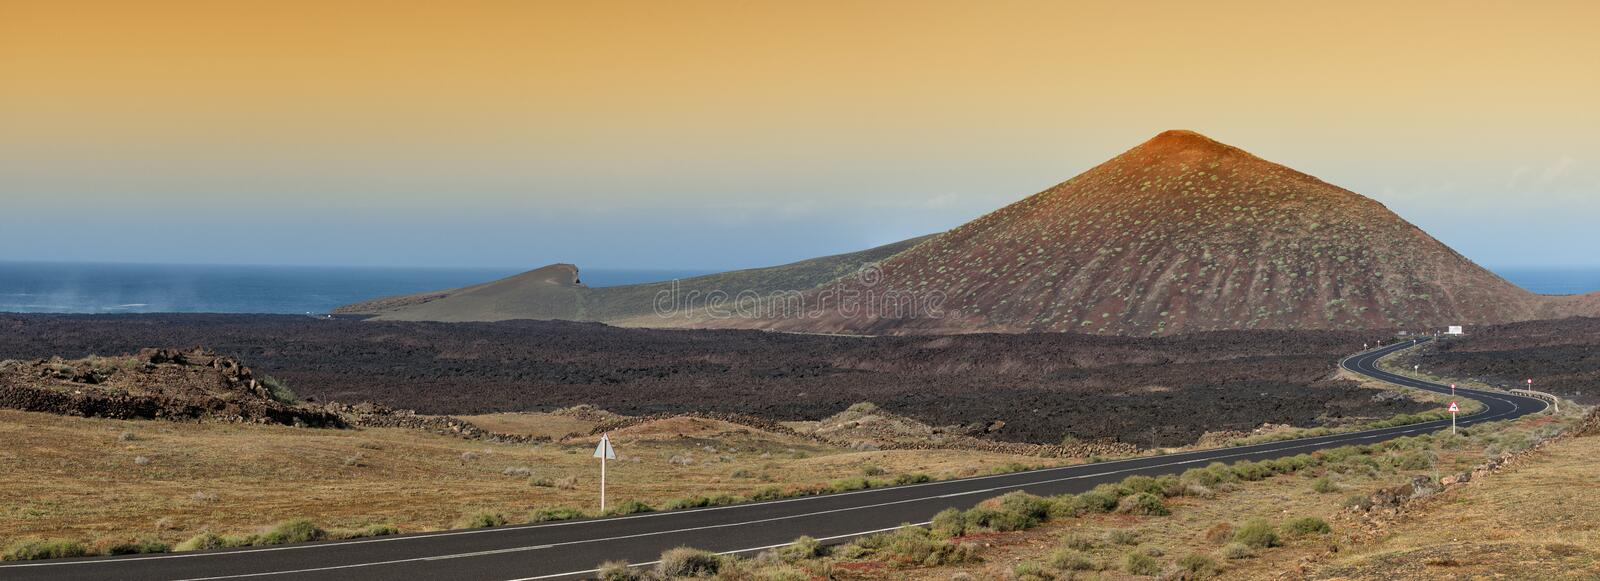 Lanzarote volcanoe, Spain. Volcanic landscape and winding road in Lanzarote, the Canary islands, Spain. Panoramic image